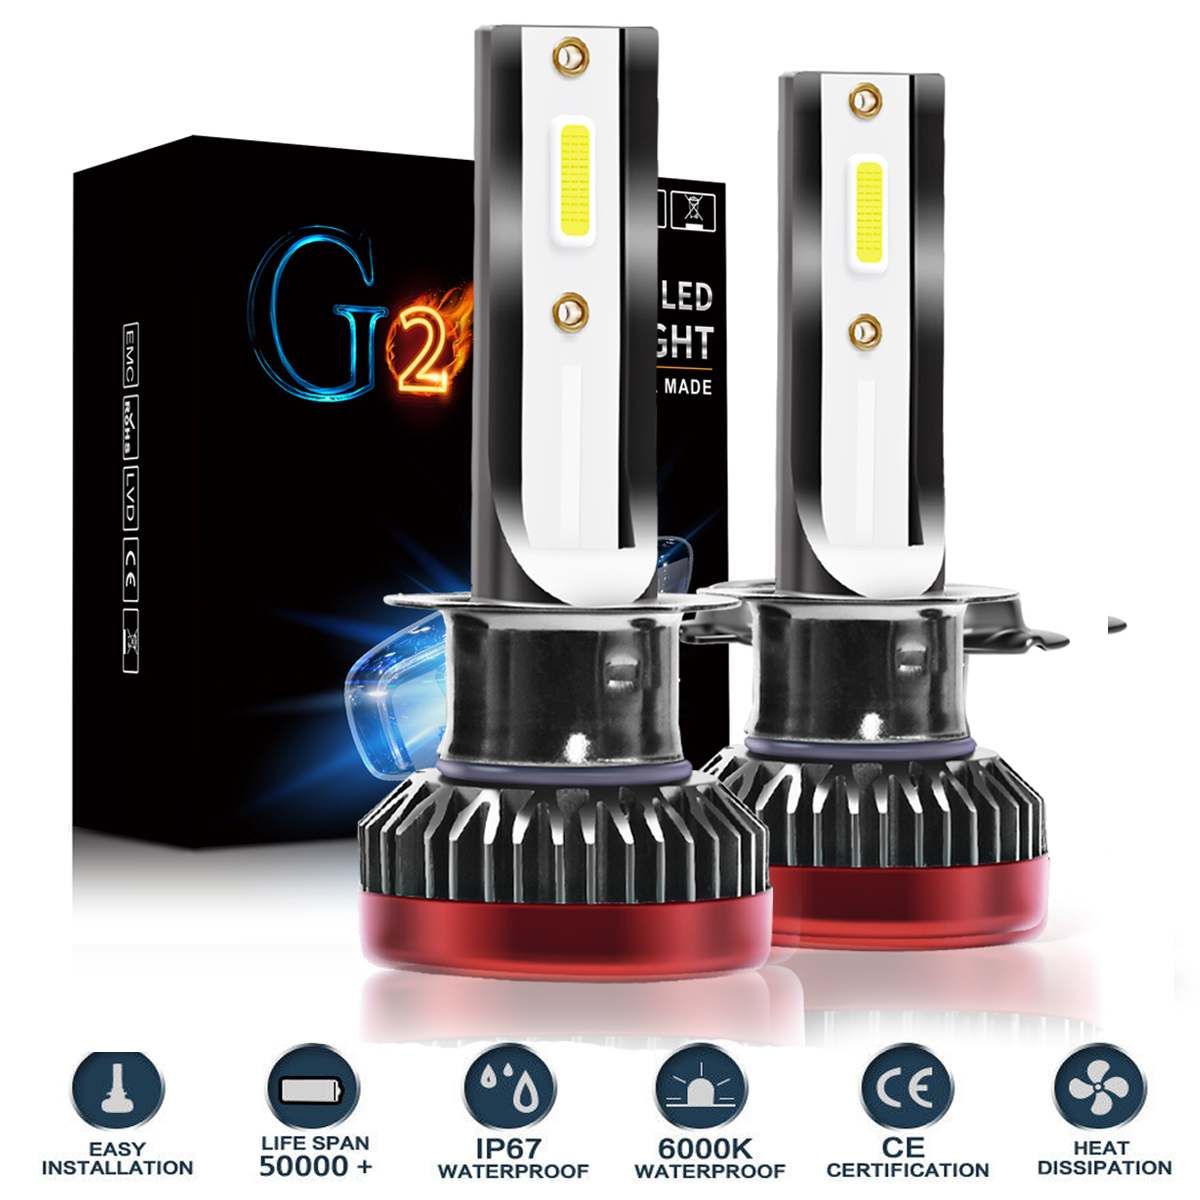 G2 Car MINI LED Headlight Bulbs Kit 160W <font><b>30000LM</b></font> 6000K High/Low Beam Headlight Bulb H1 H3 <font><b>H7</b></font> H8/9/11 9005/HB3/H10 9006/HB4 9012 image